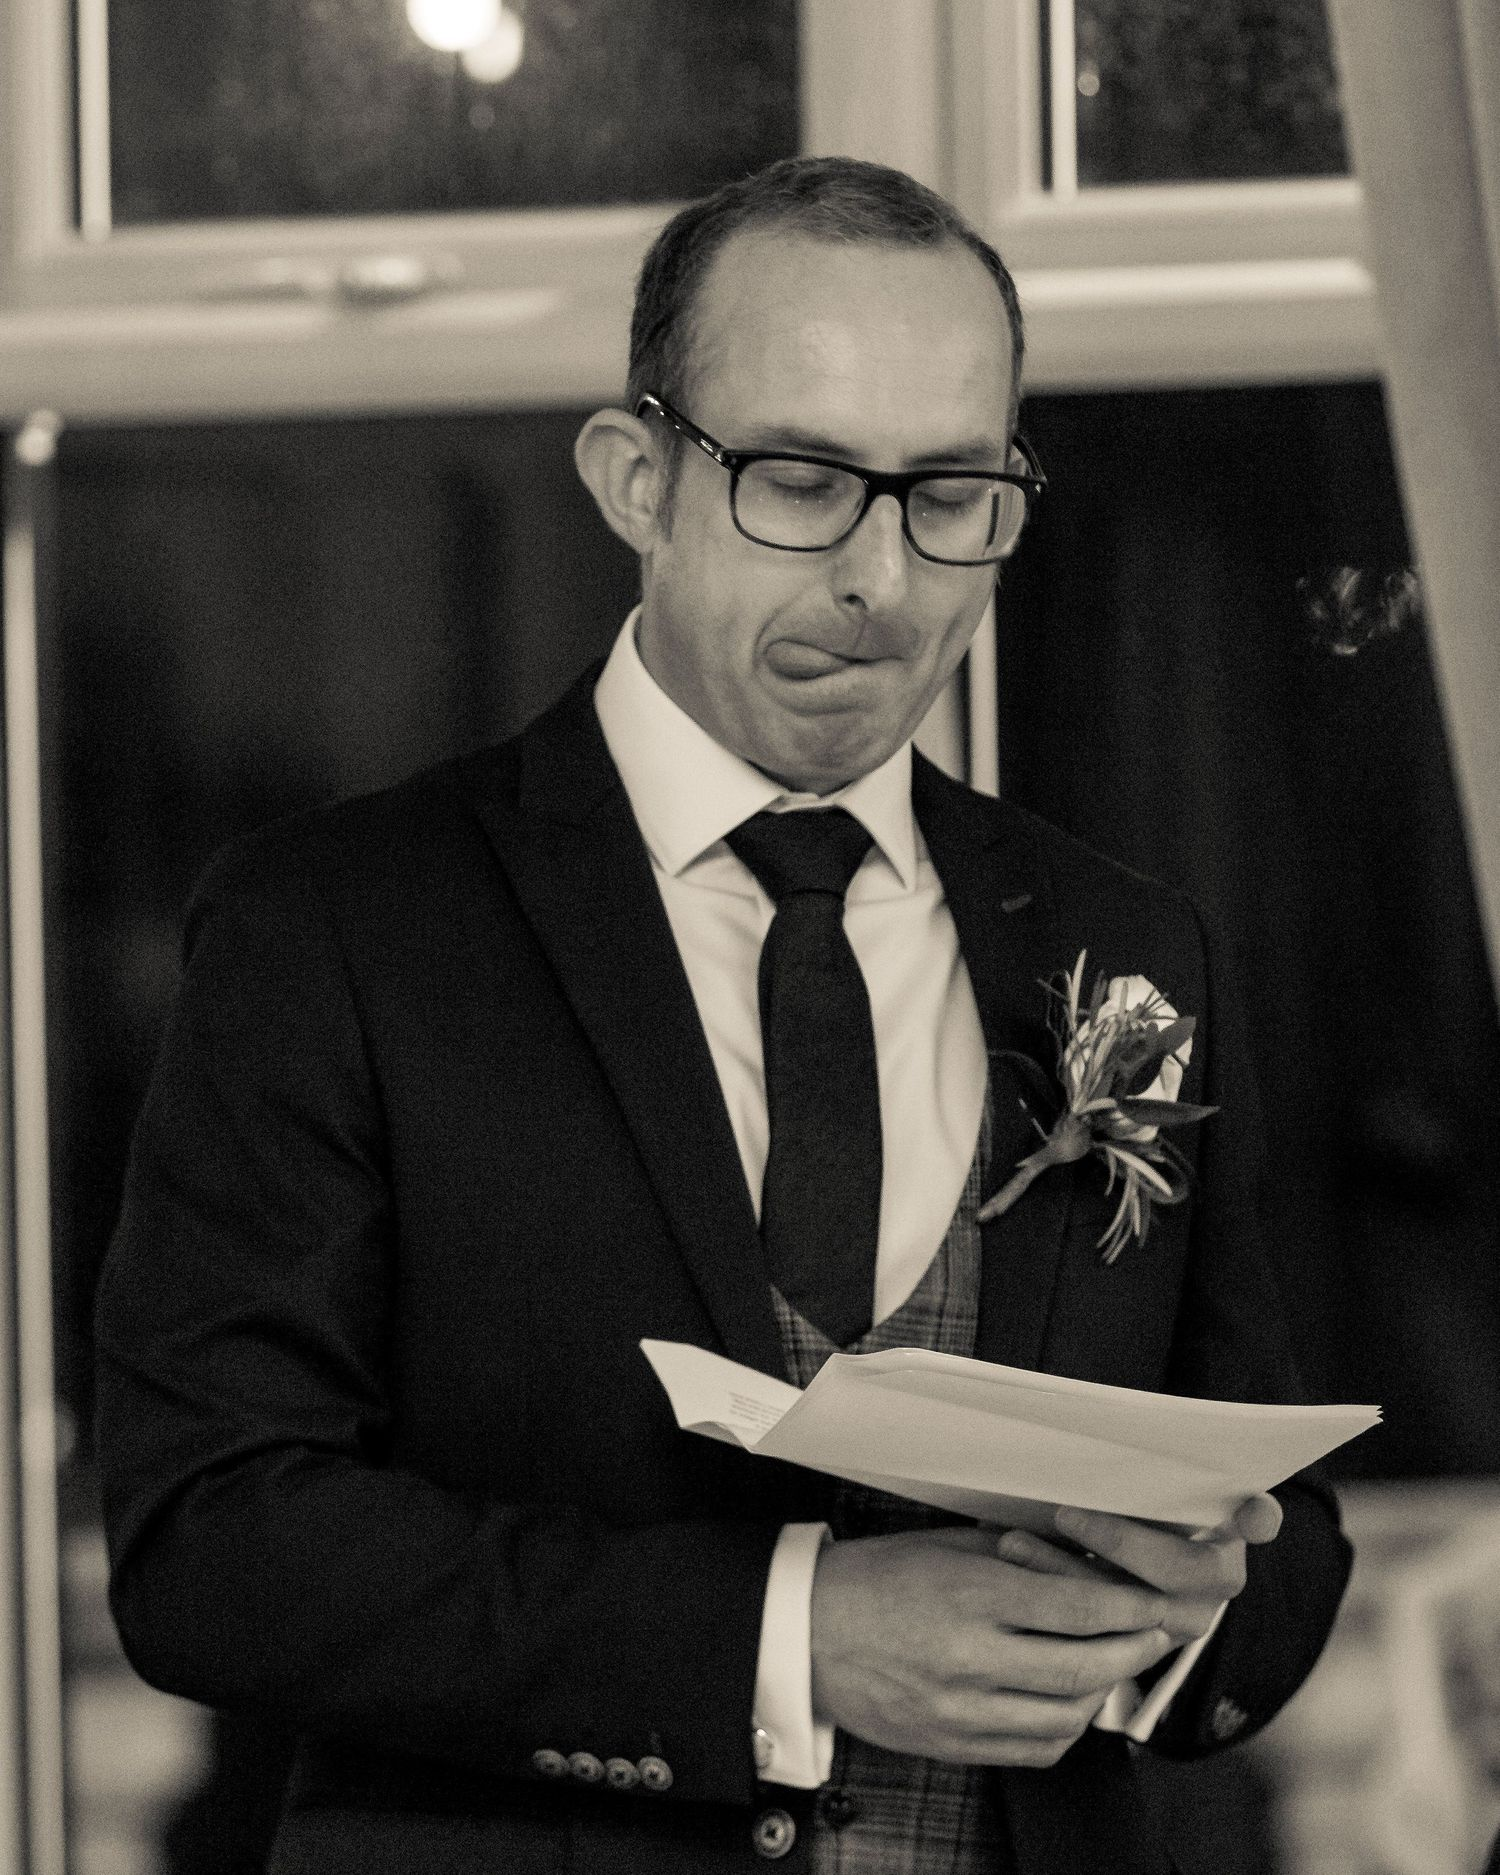 the best man holding his notes with his tongue out while giving his wedding speech